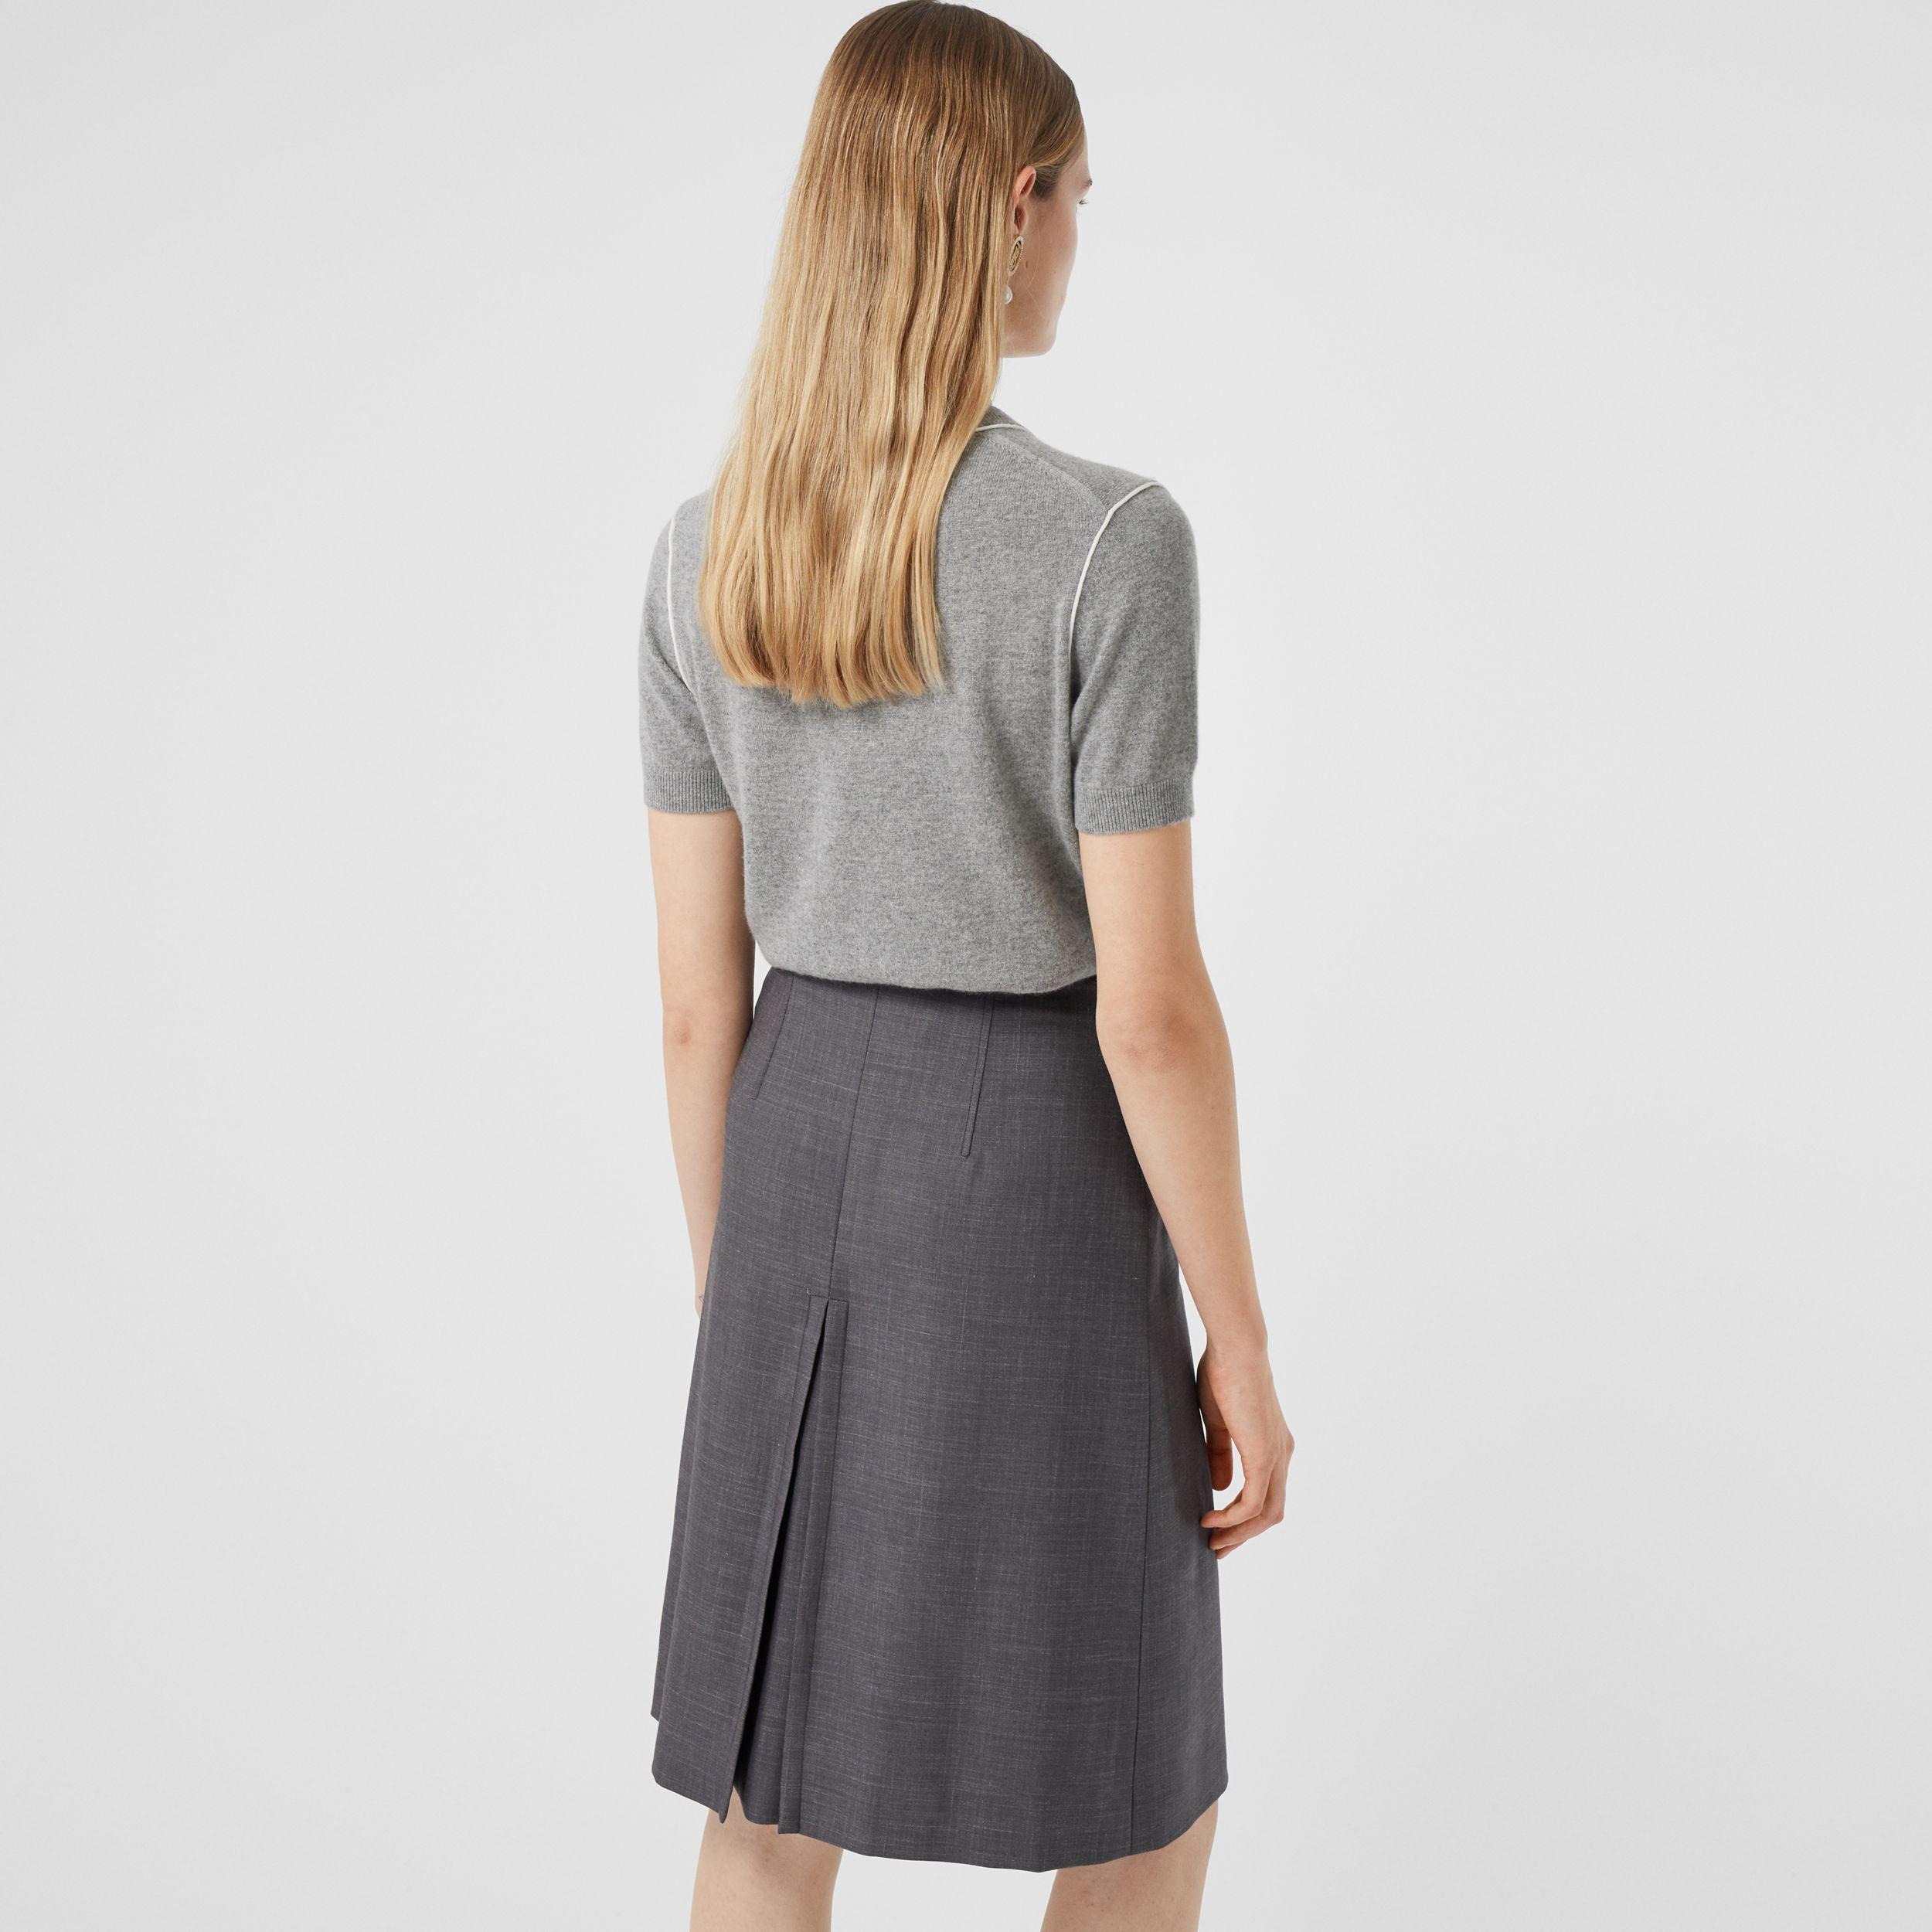 Short-sleeve Monogram Motif Cashmere Top in Grey Melange - Women | Burberry - 3